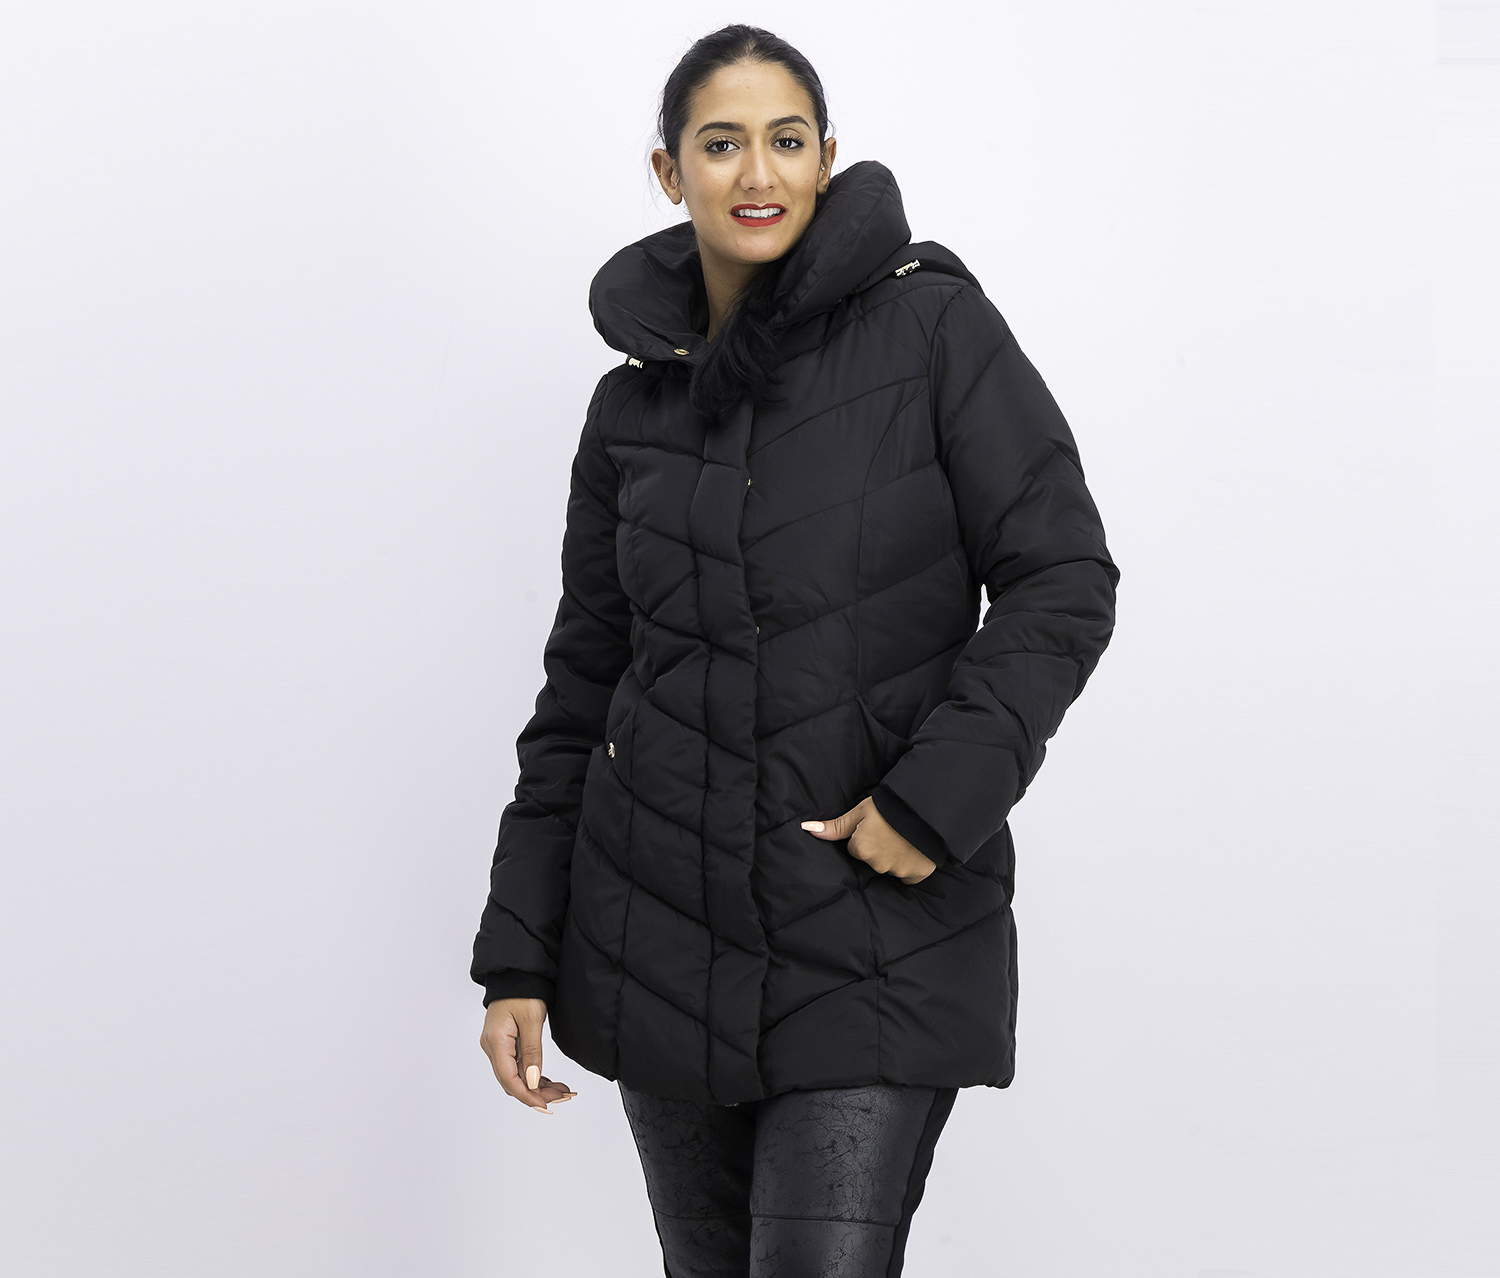 Women's Long Puffer Jacket, Black